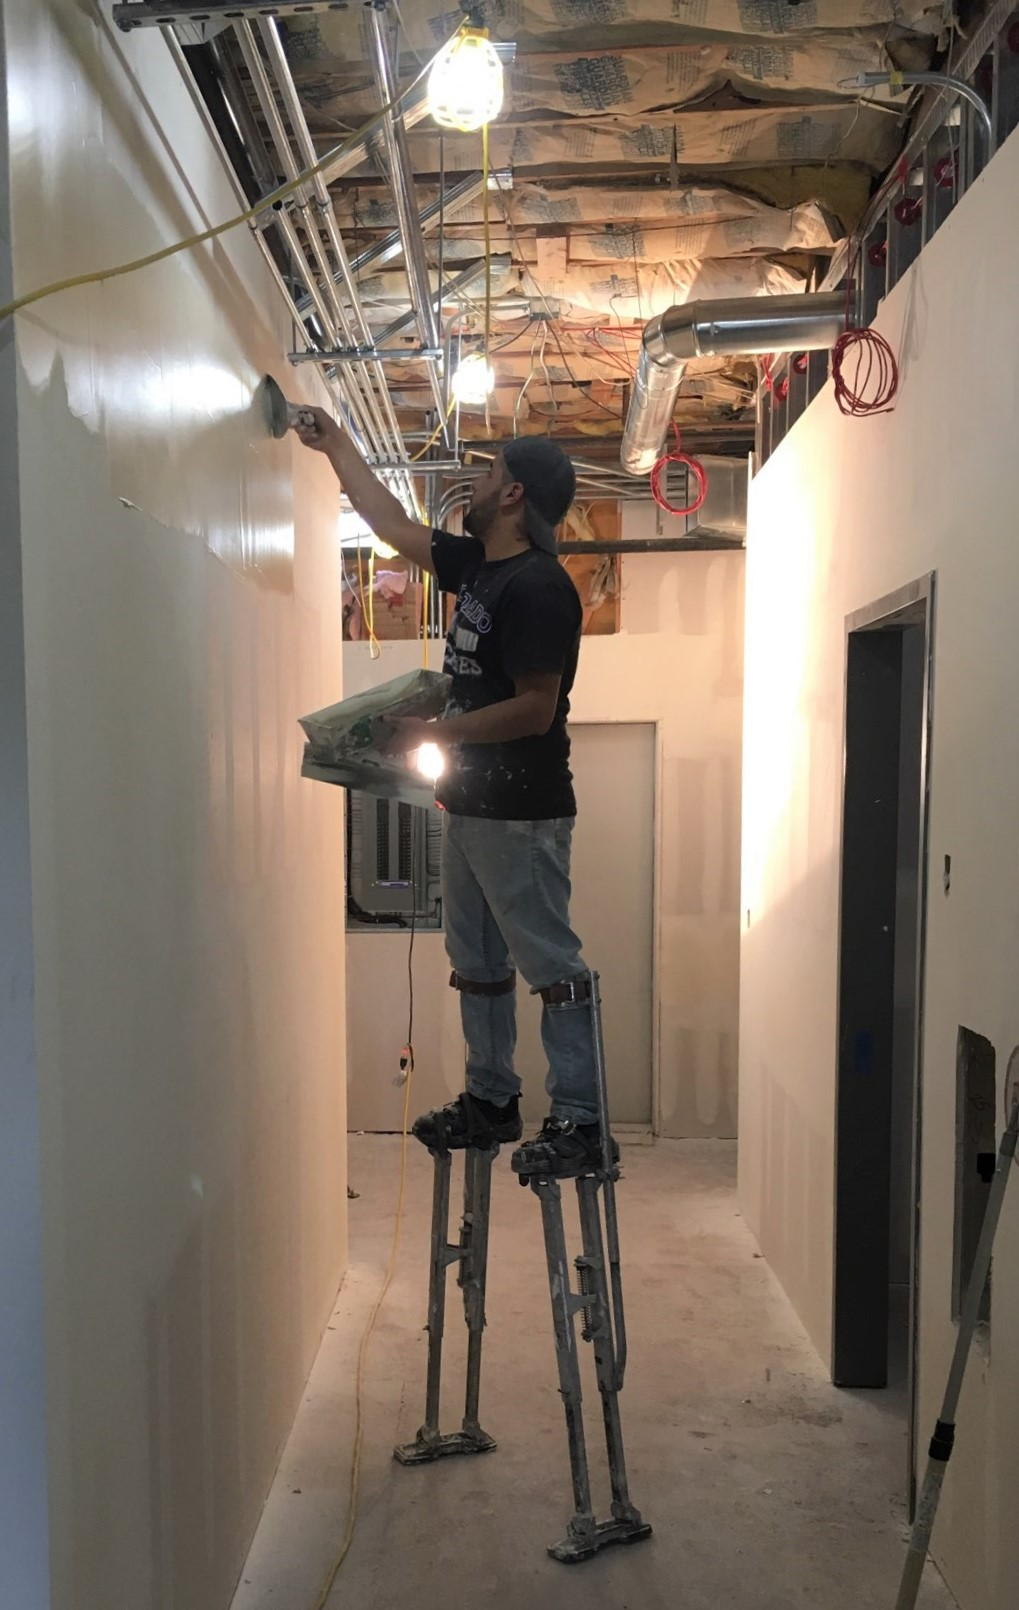 Worker on drywall stilts 10-10-2018 Tour